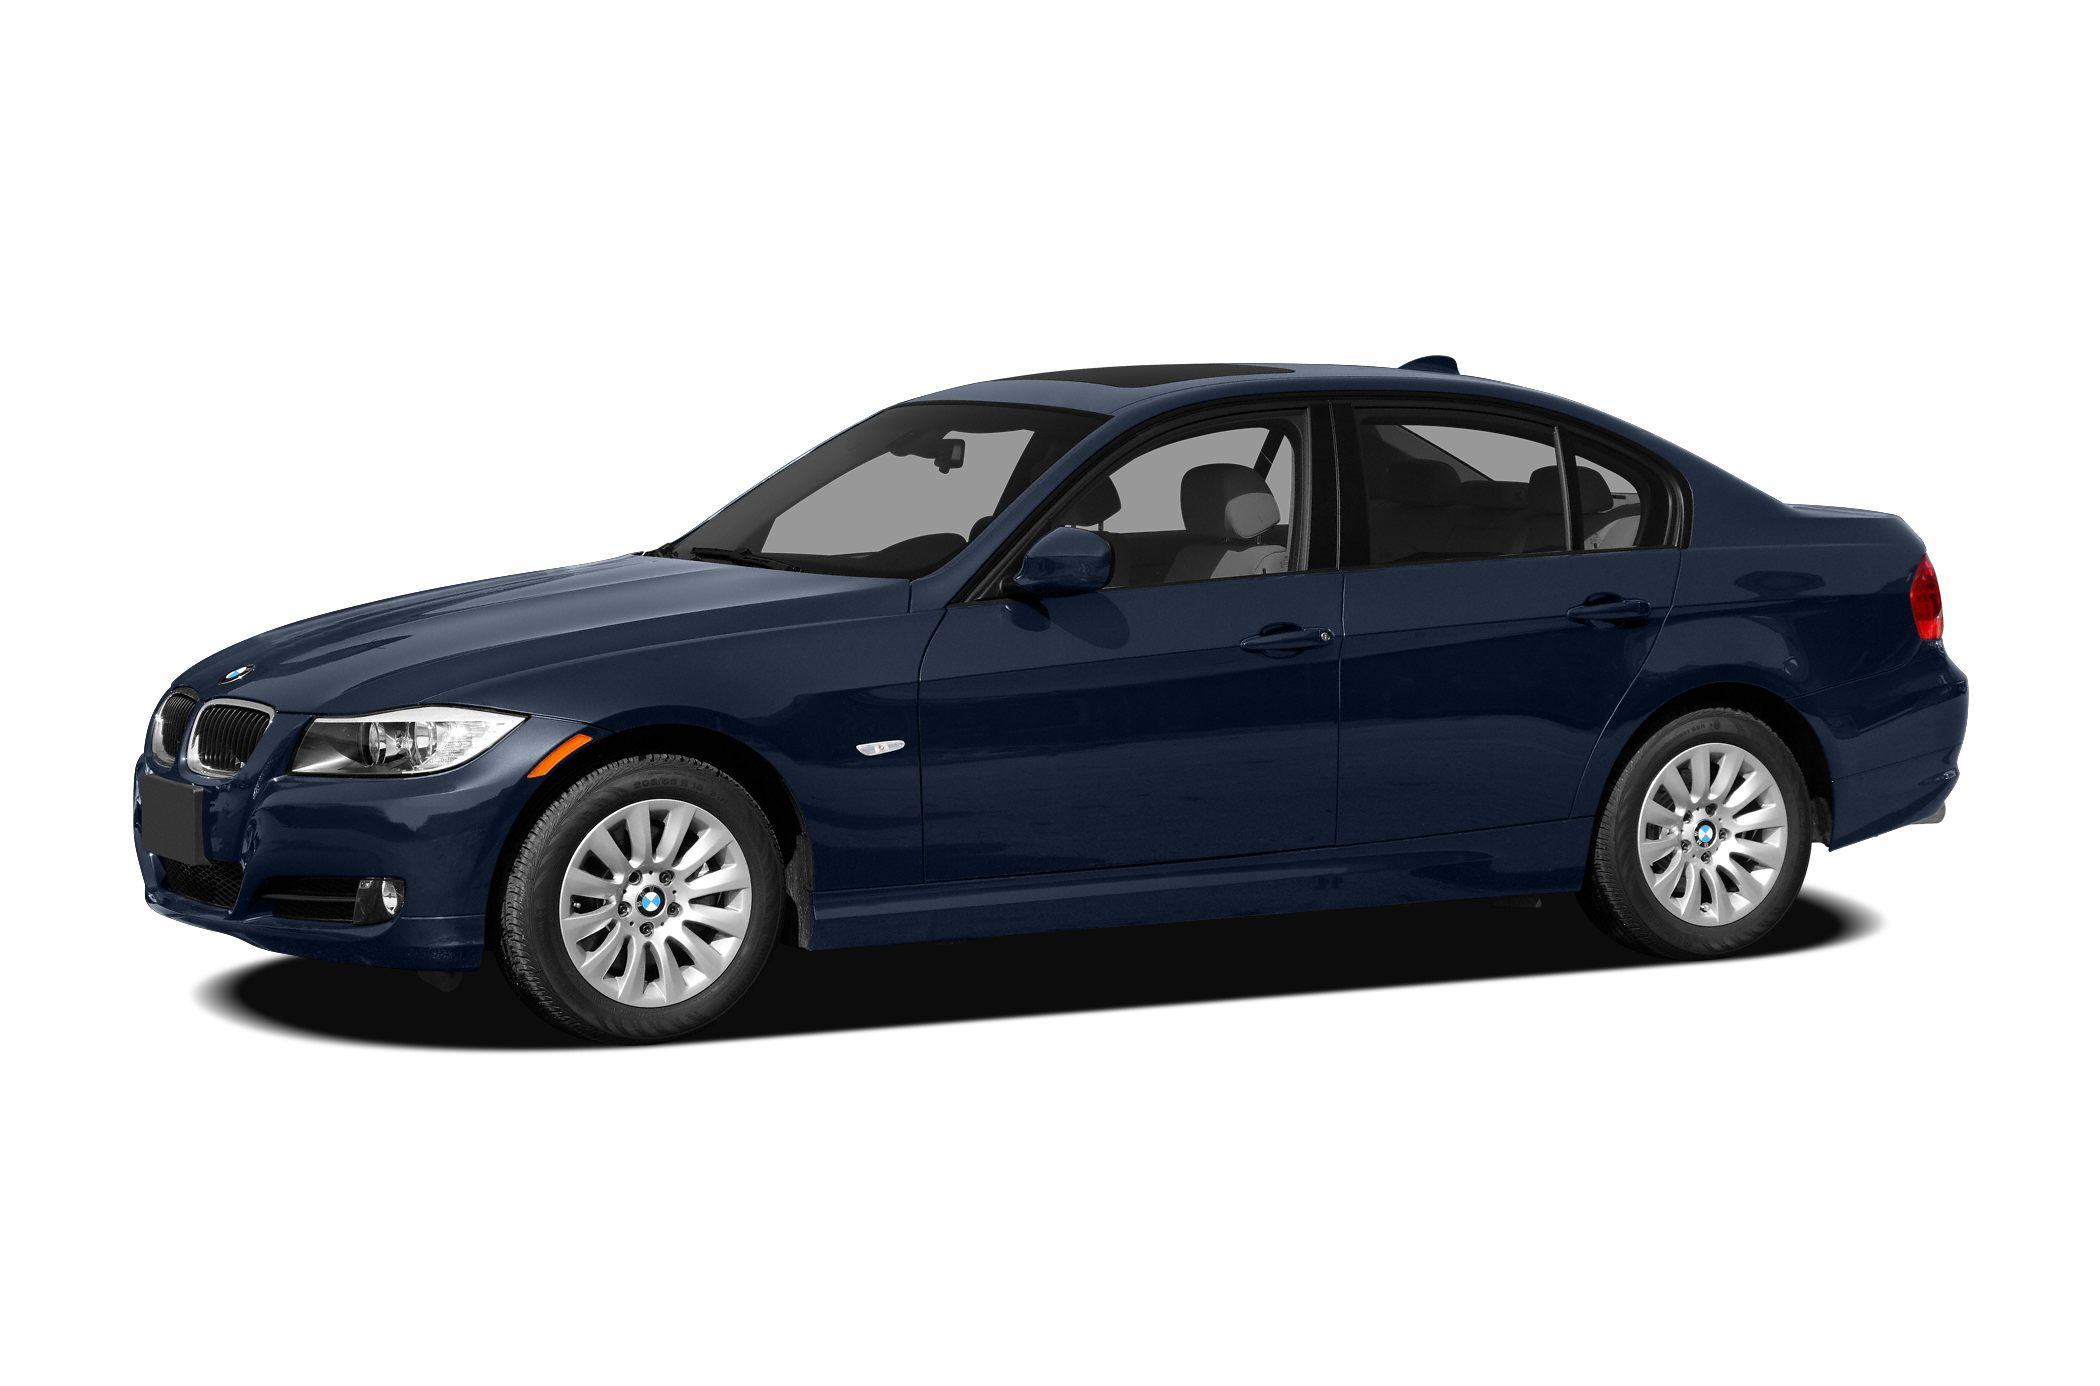 2010 BMW 3 Series 328i xDrive WE SELL OUR VEHICLES AT WHOLESALE PRICES AND STAND BEHIND OUR CARS